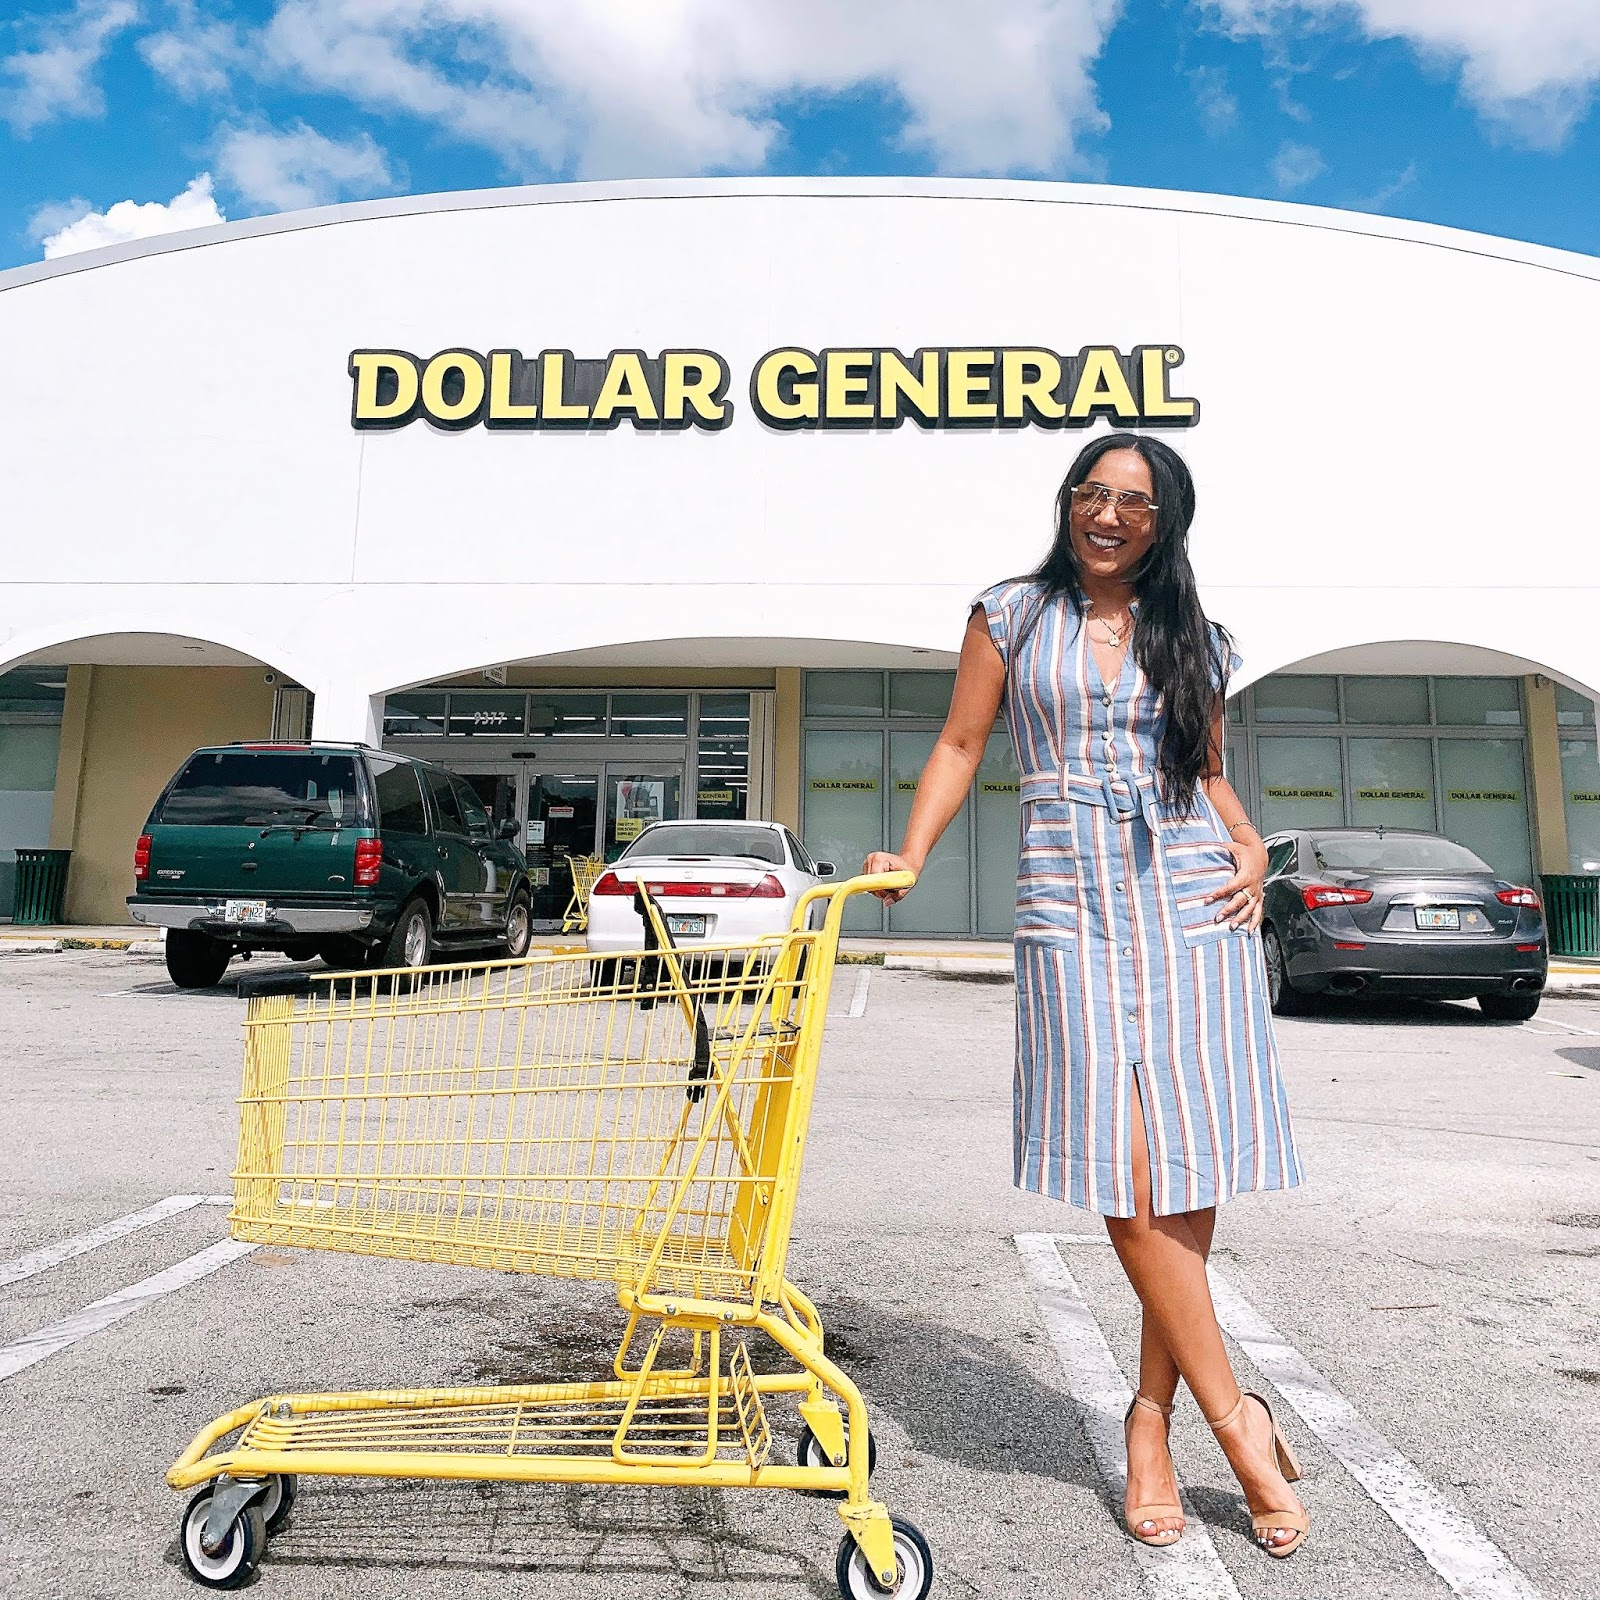 shopping-cart-photoshoot-ideas-dollar-general